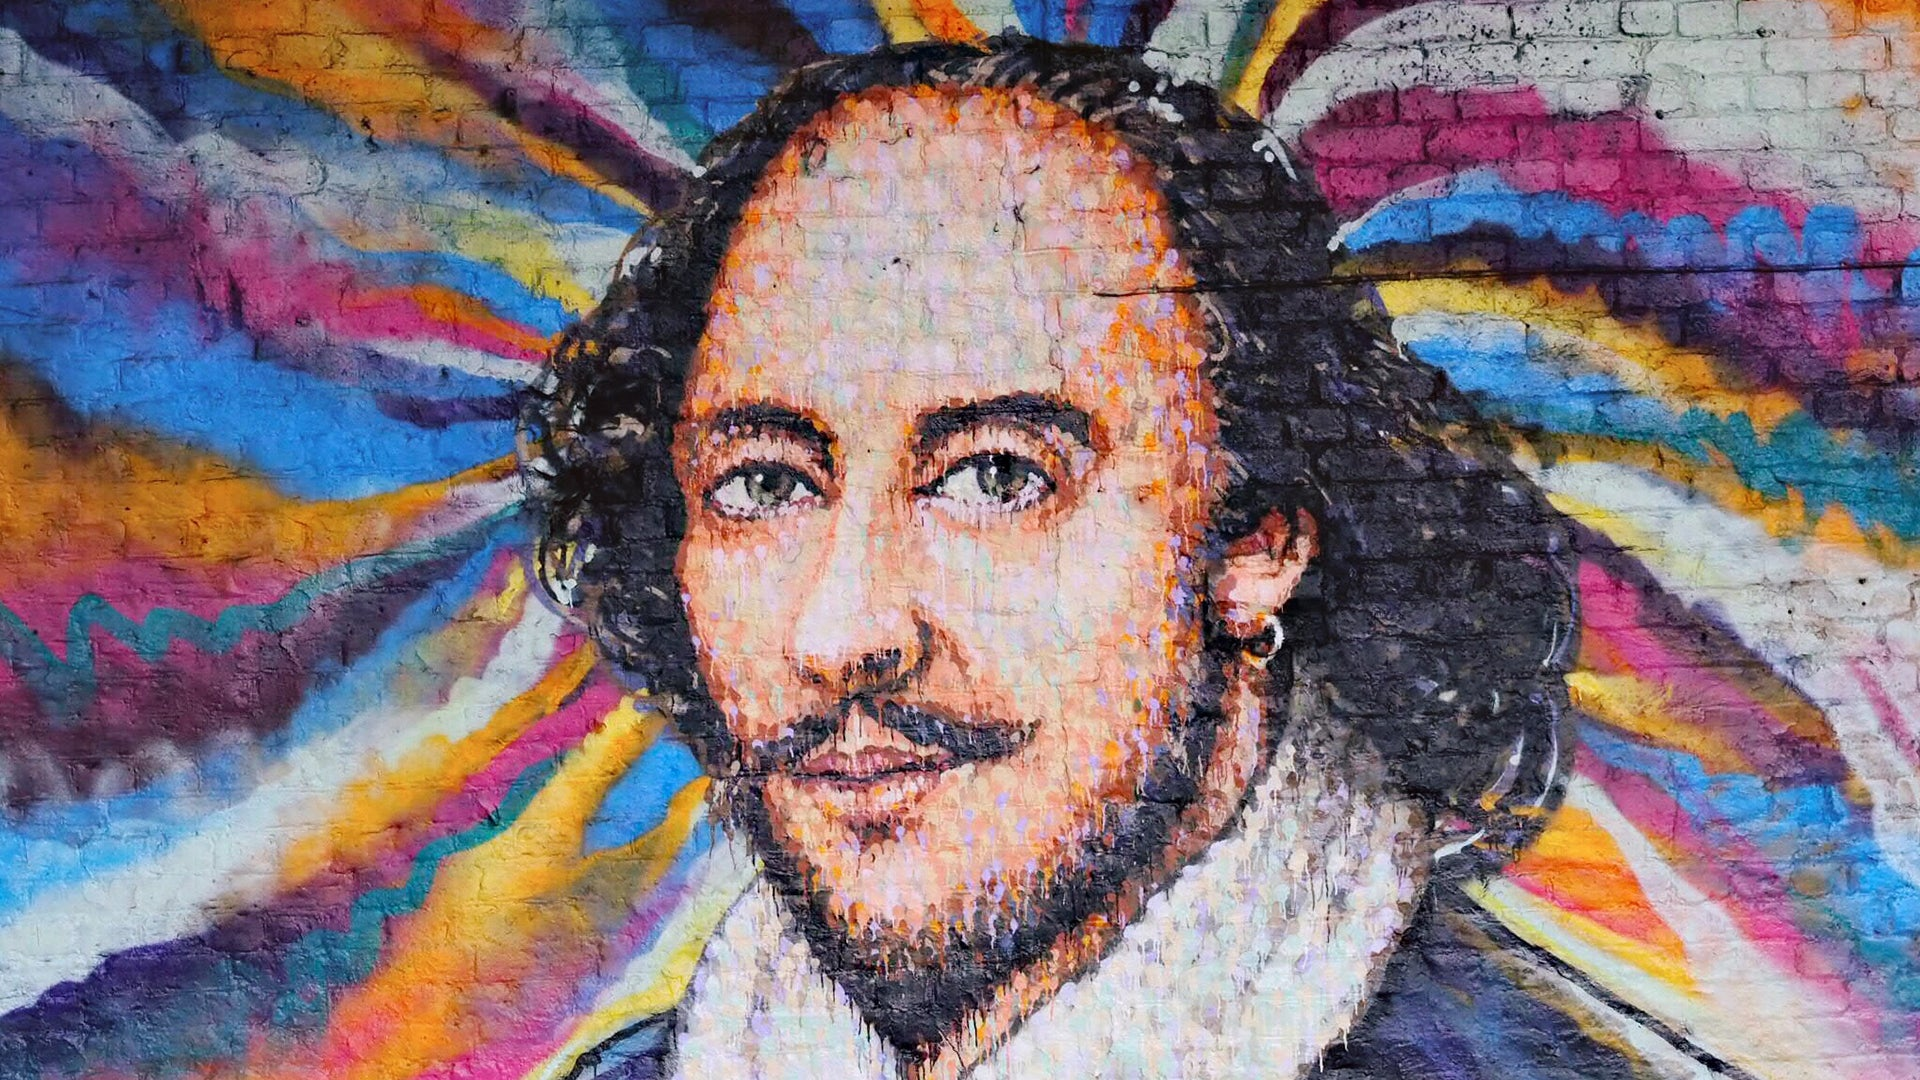 A colourful painted image of Shakespeare on a wall